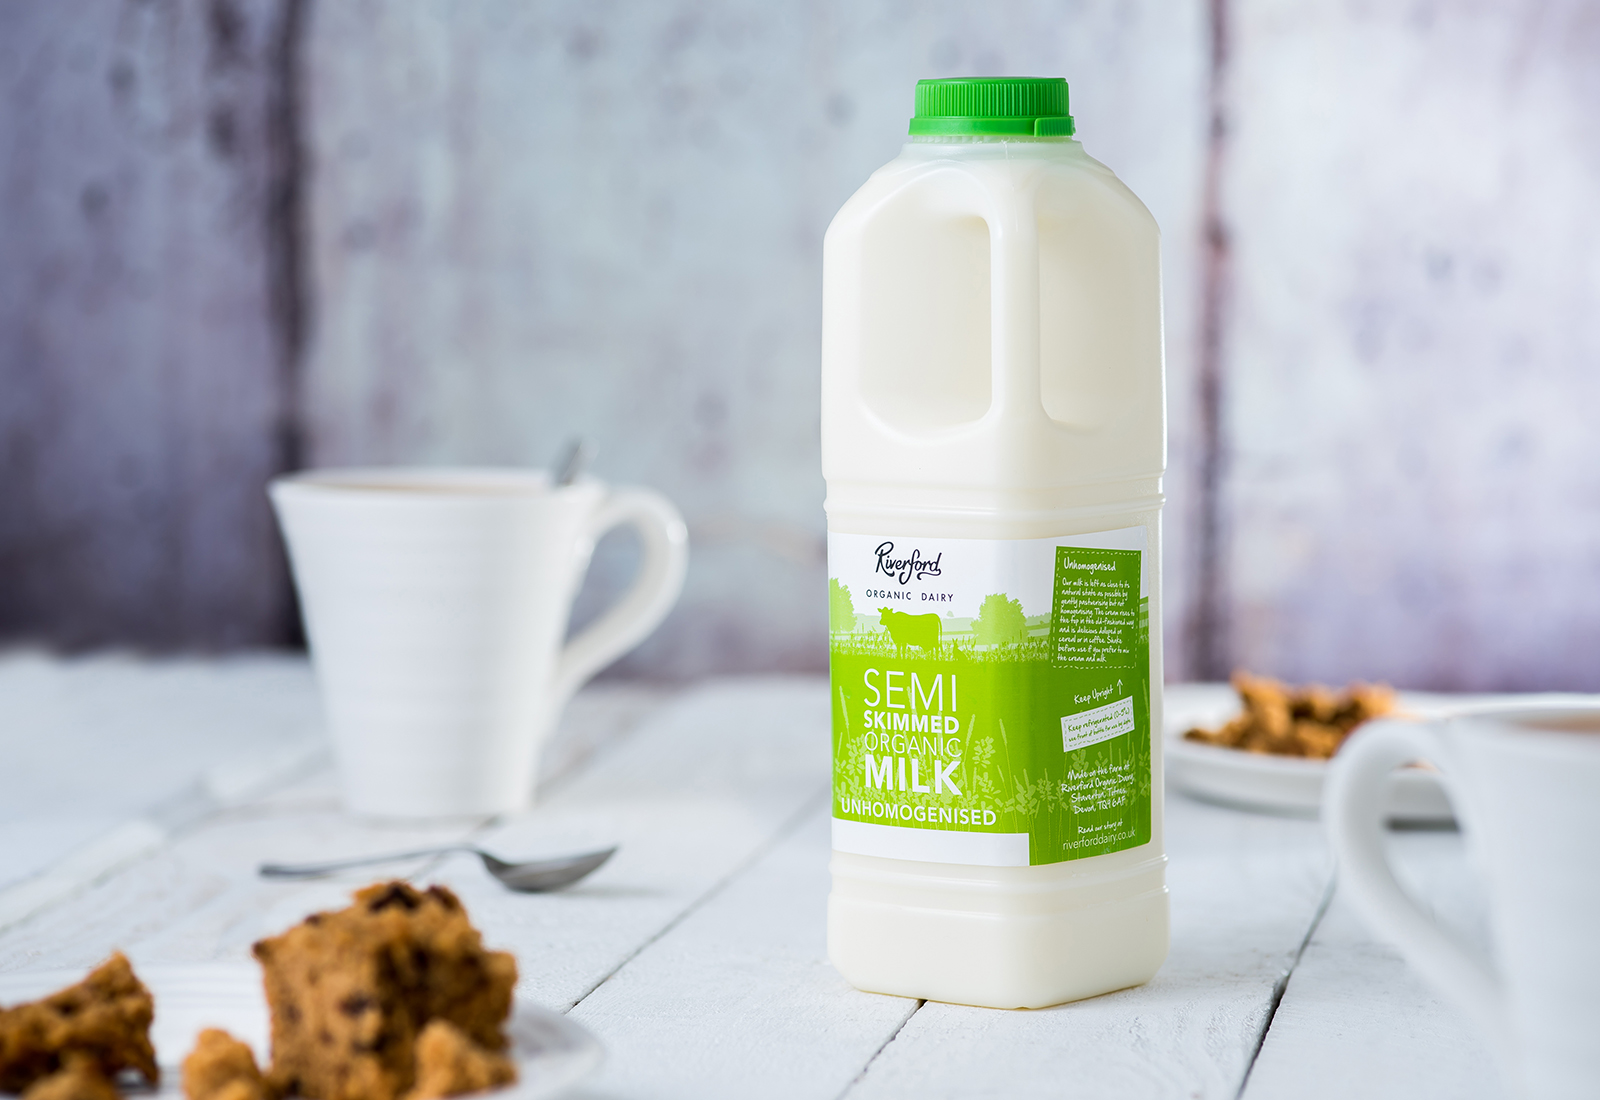 A picture of Organic Semi Skimmed Milk from Riverford Organic Dairy